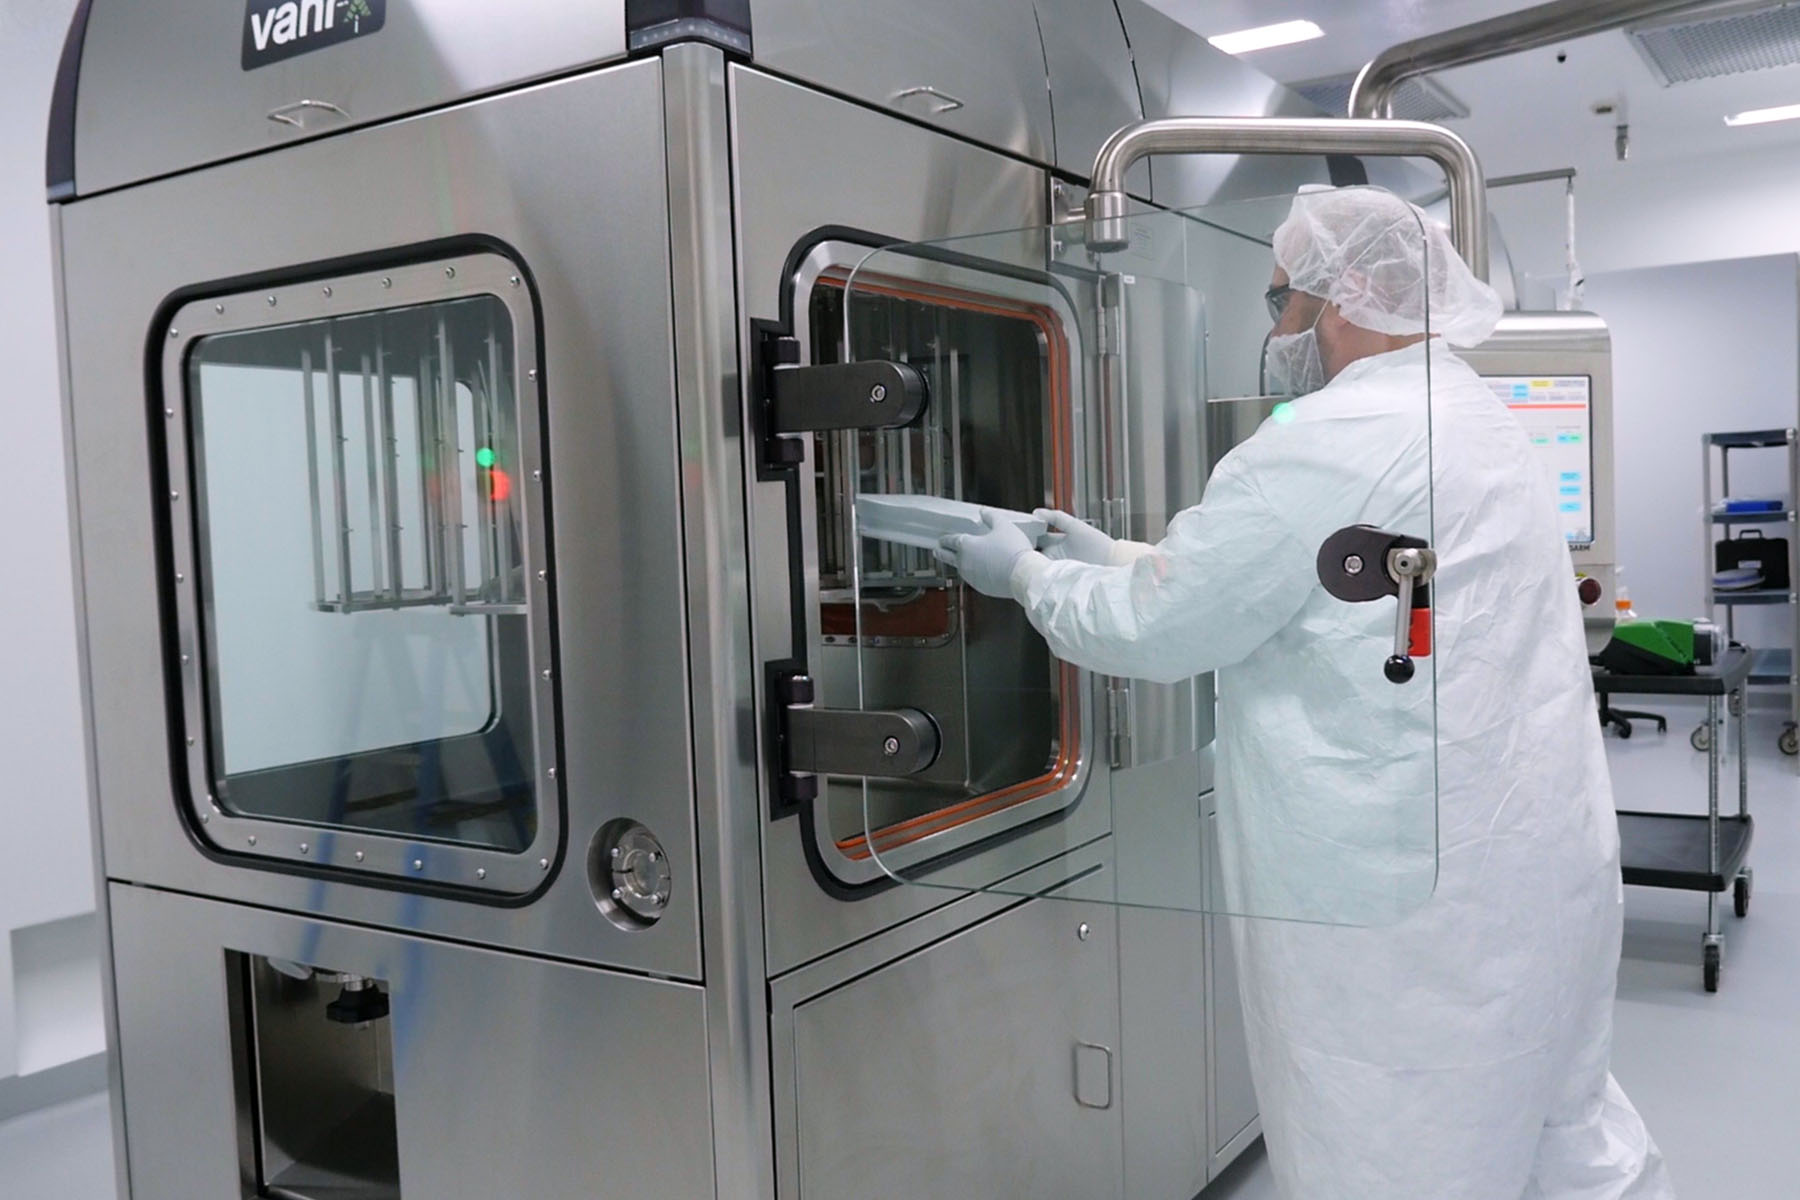 Operator prepares the SA25 Aseptic Filling Workcell in a cleanroom at FUJIFILM Diosynth Biotechnologies.